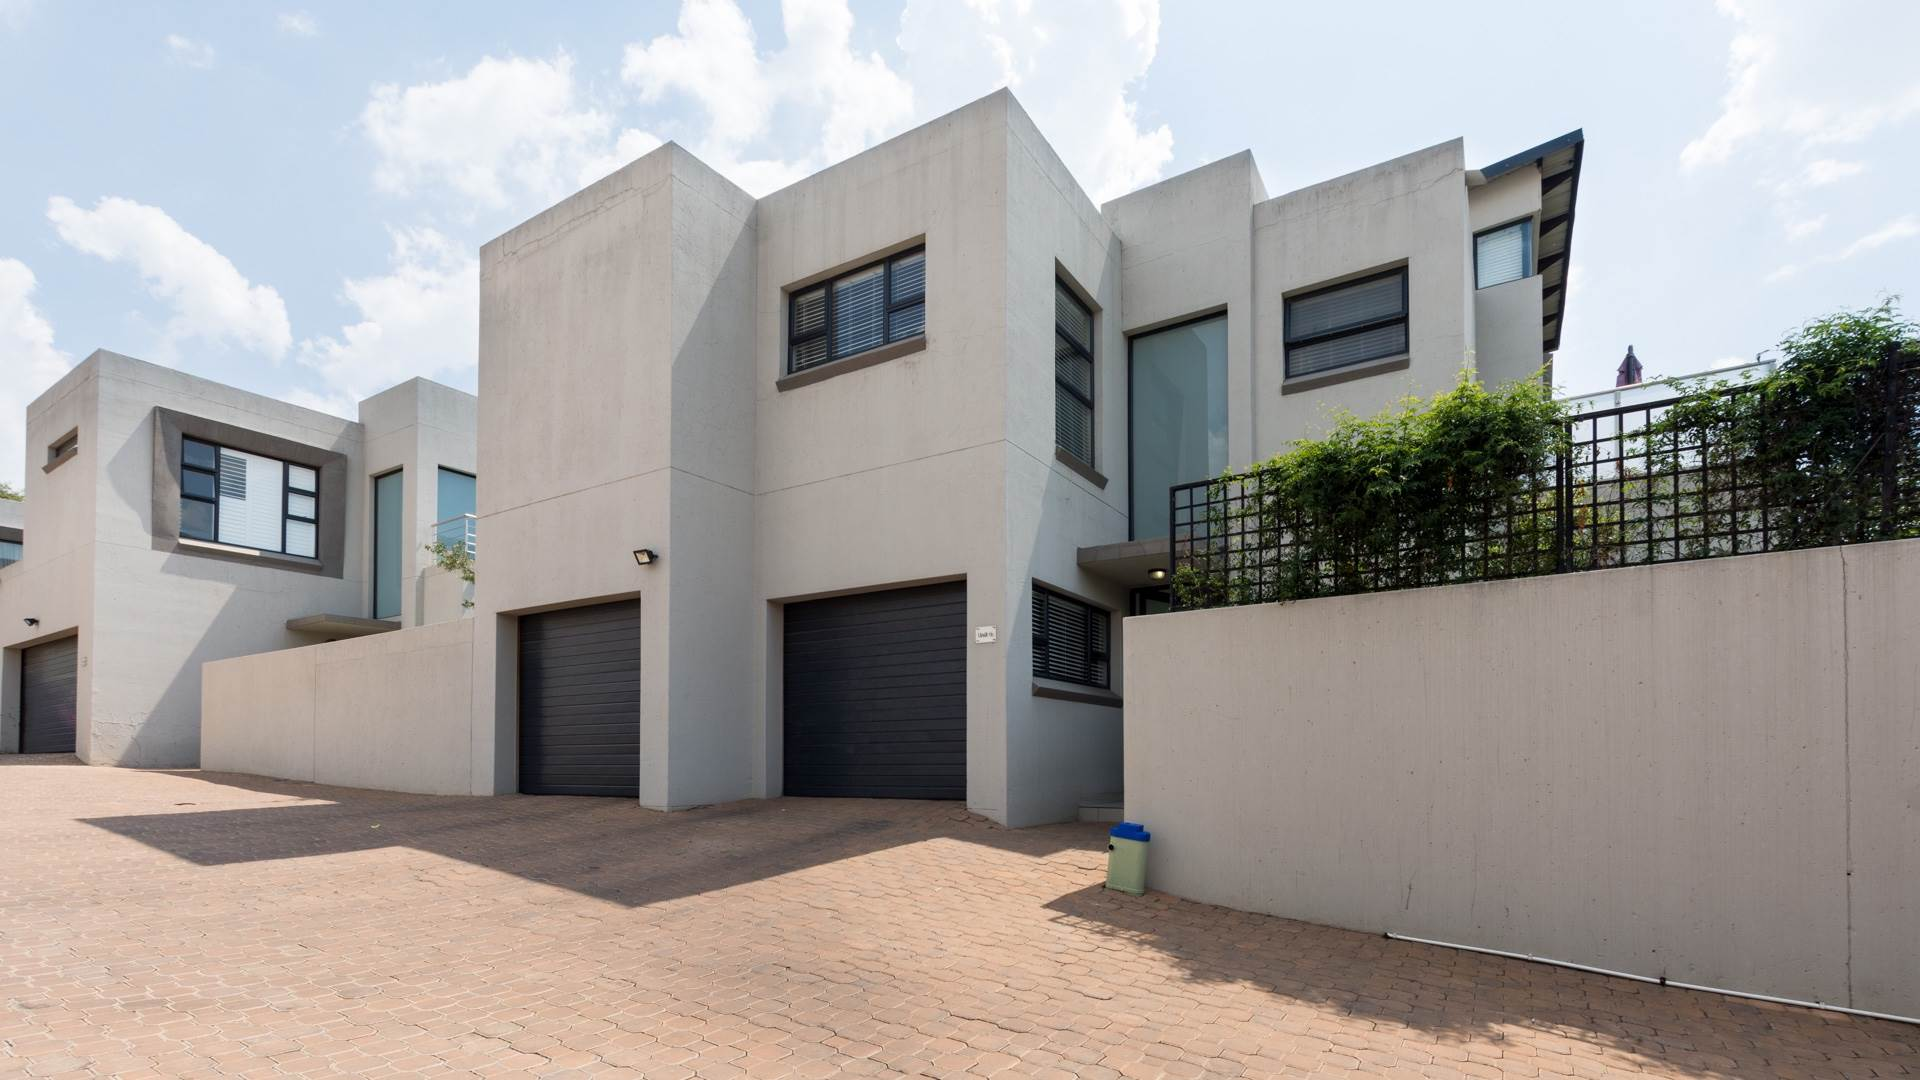 3 BedroomHouse For Sale In Craighall